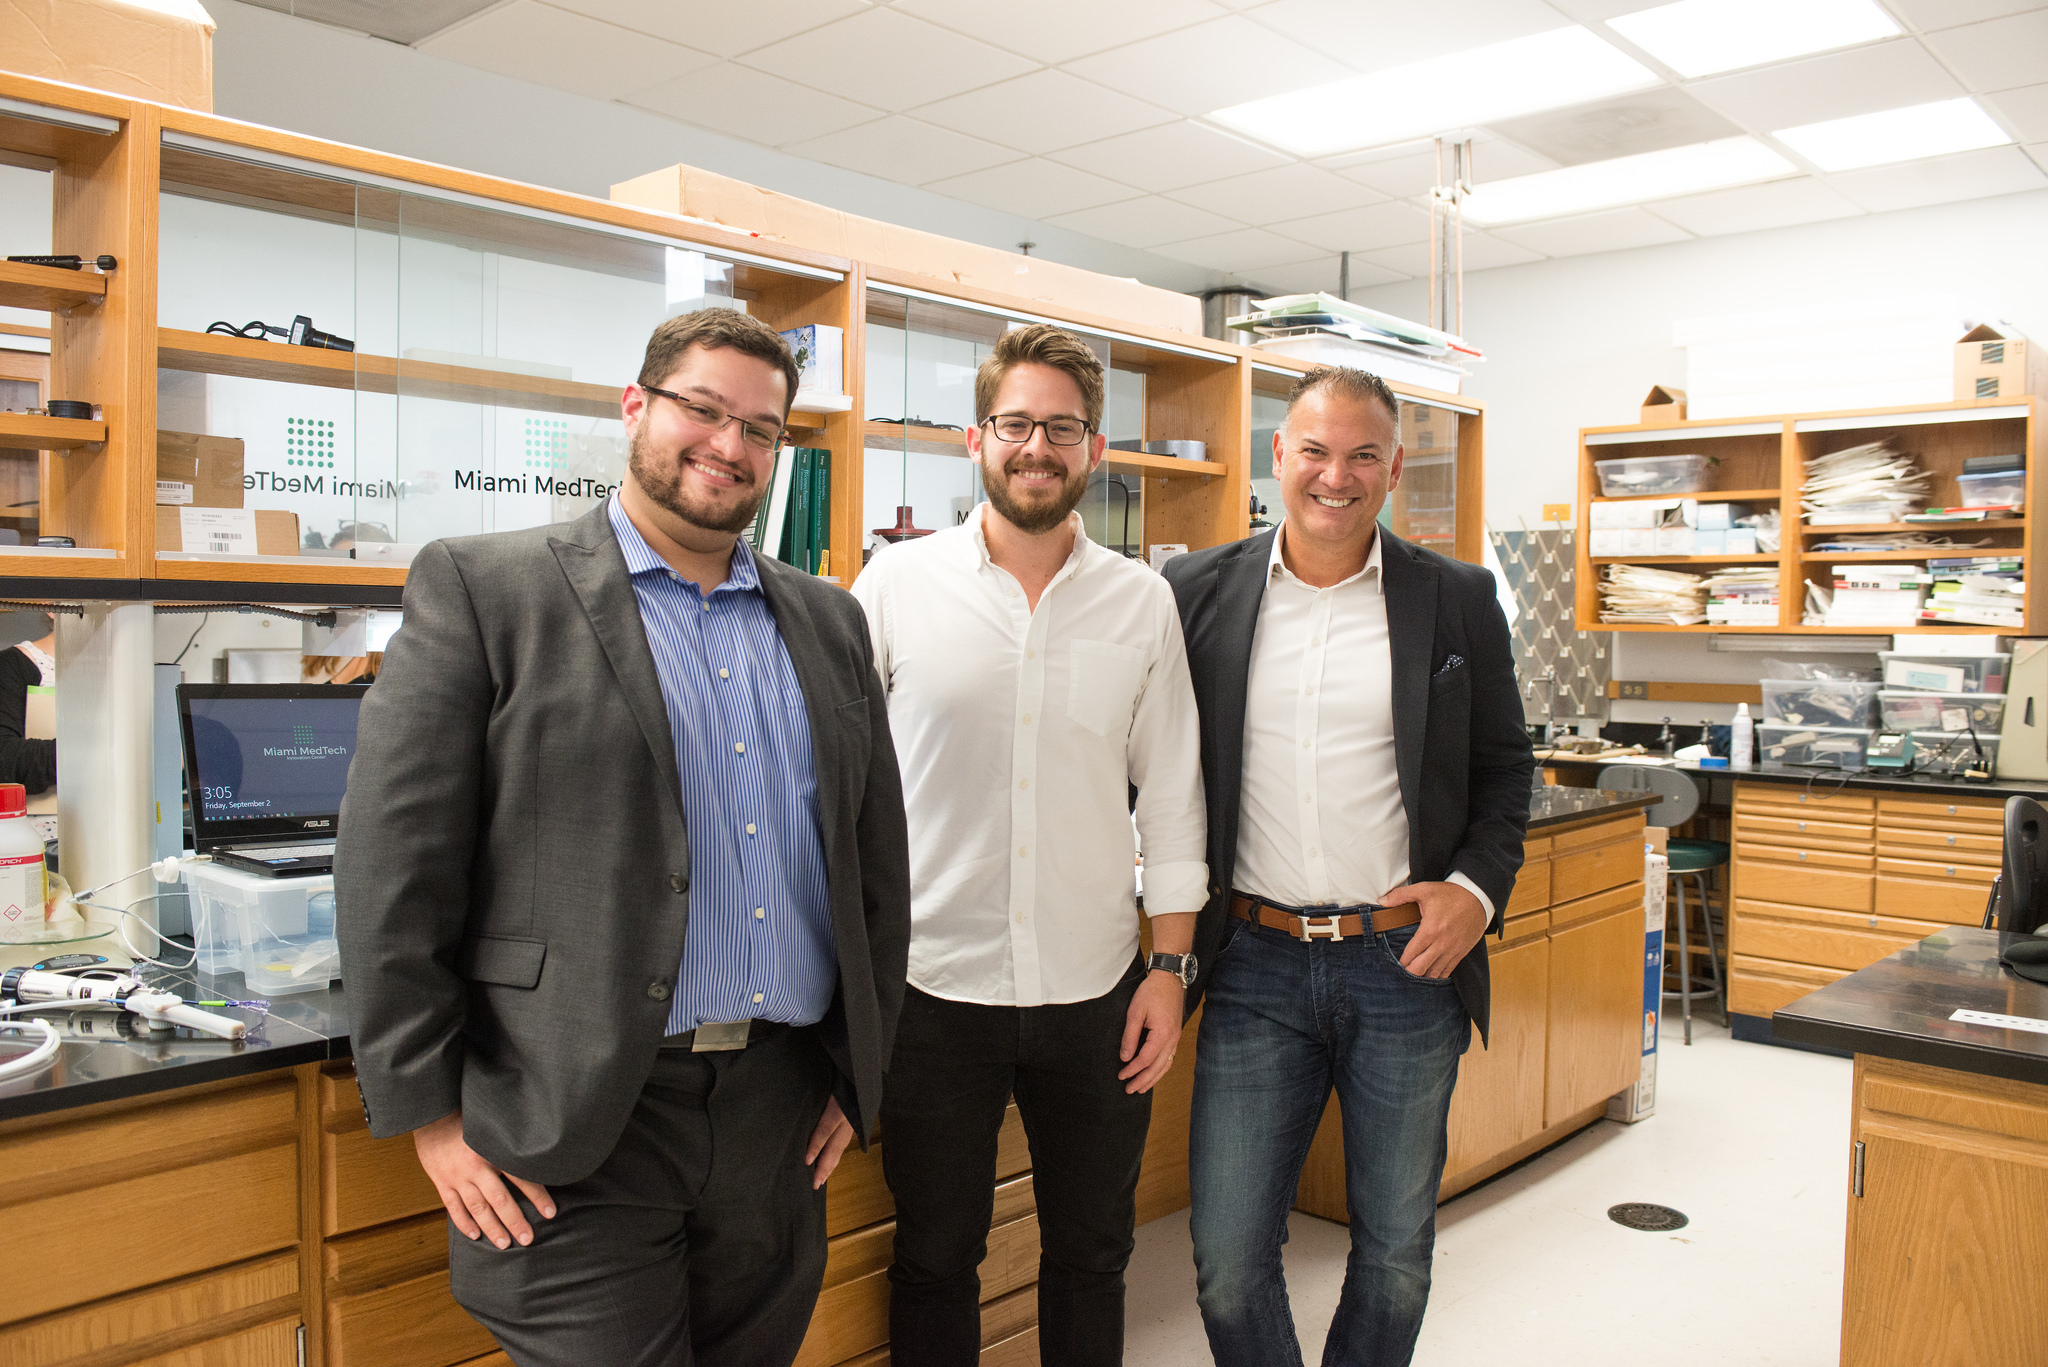 The founding members of Miami MedTech (from left to right): David Knopf, Max Mendez and Dr. Pedro Martinez-Clark.